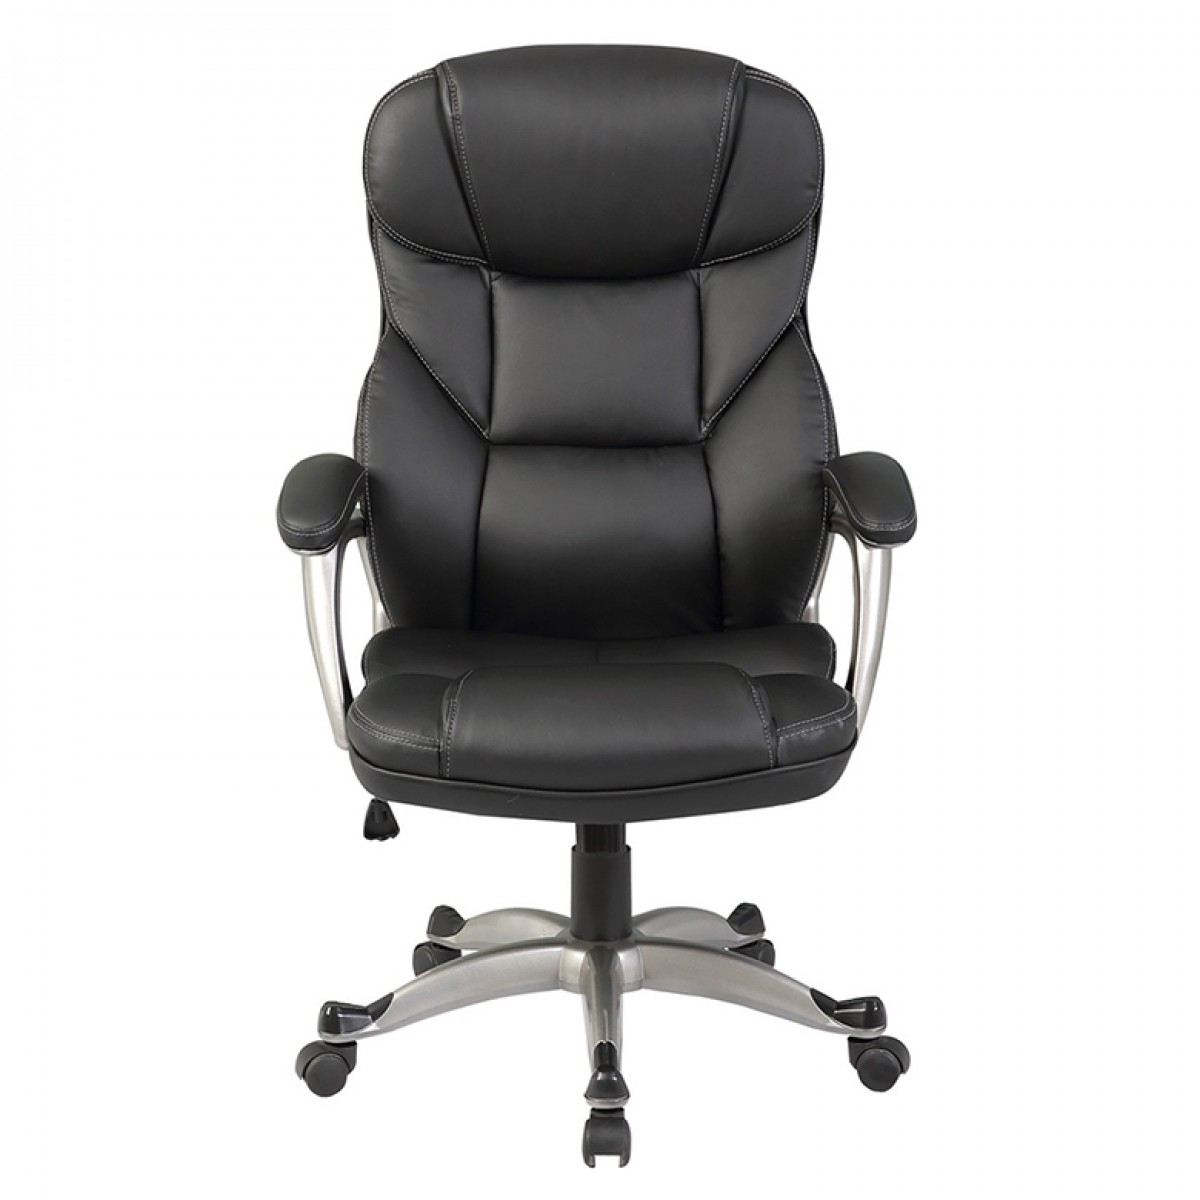 comfortable gaming chair belleze ergonomic leather executive computer chair